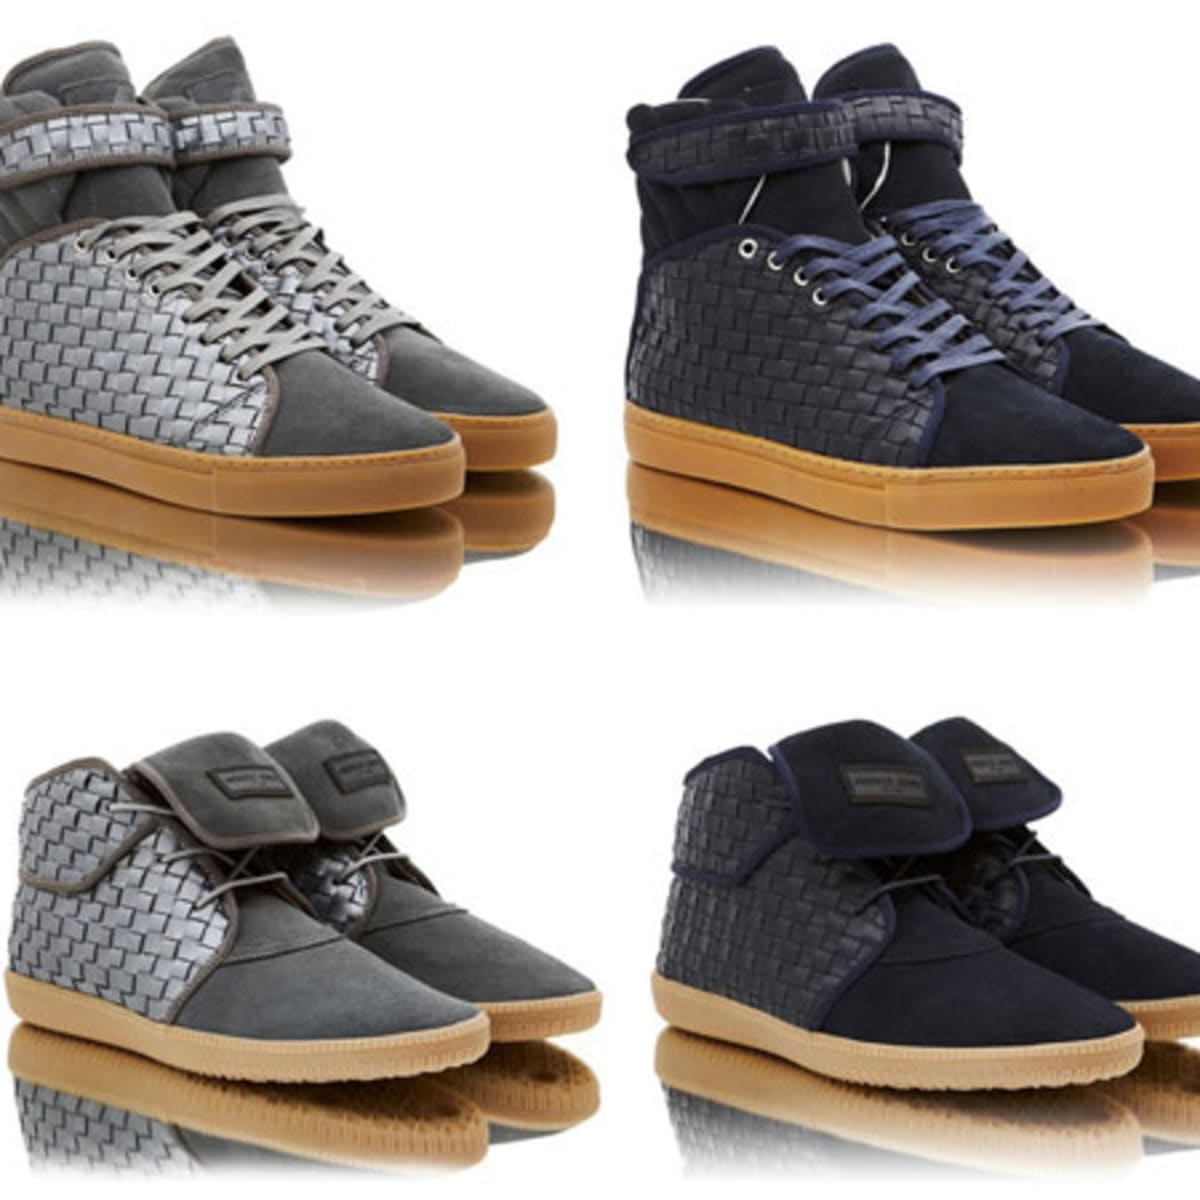 Android Homme Propulsion Ll Mach 1 Summer Woven Pack Freshness Mag